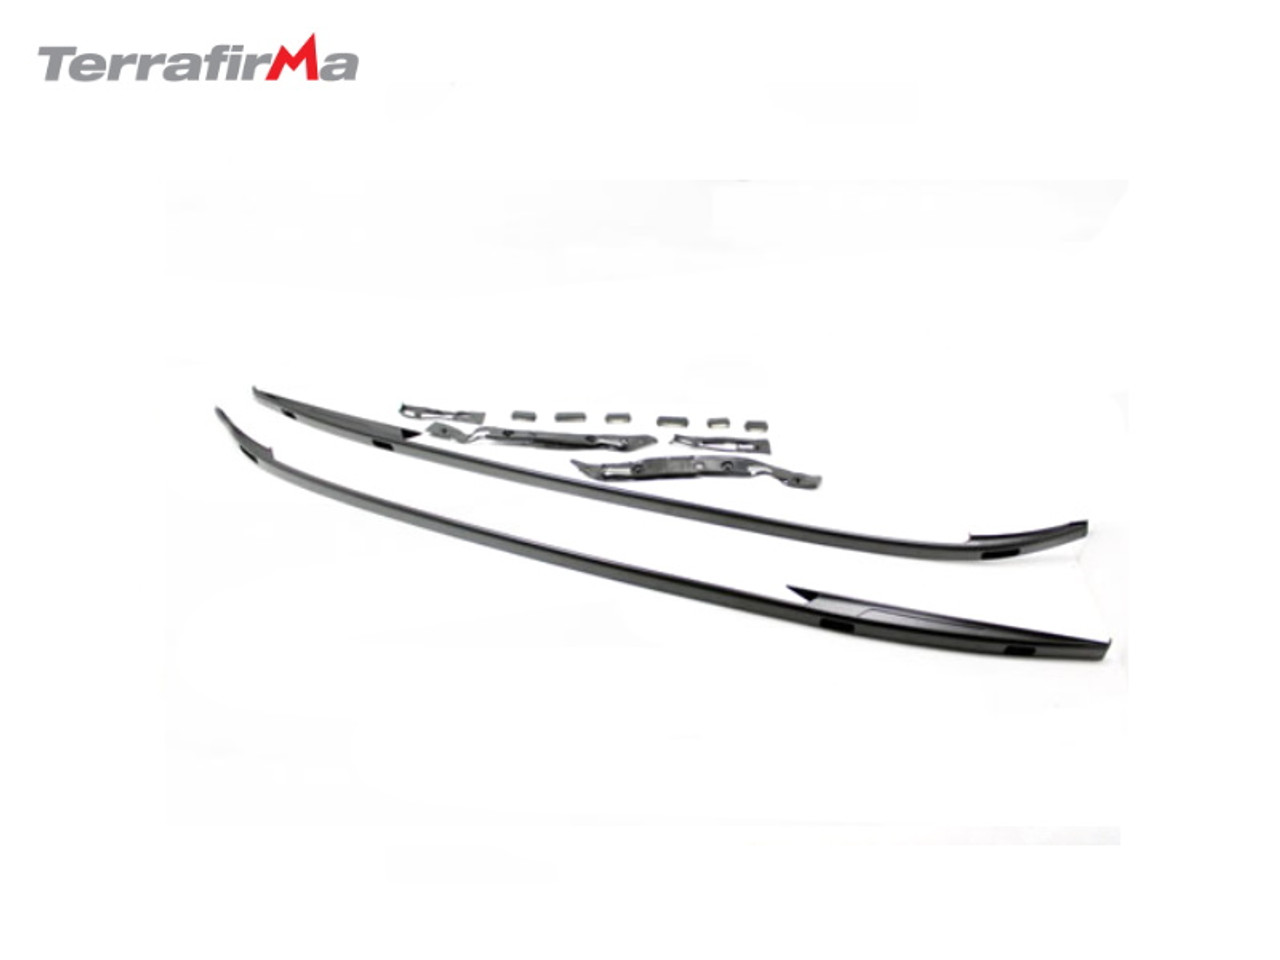 Terrafirma Roof Rails For Discovery Sport With Panoramic Roof - VPLCR0136